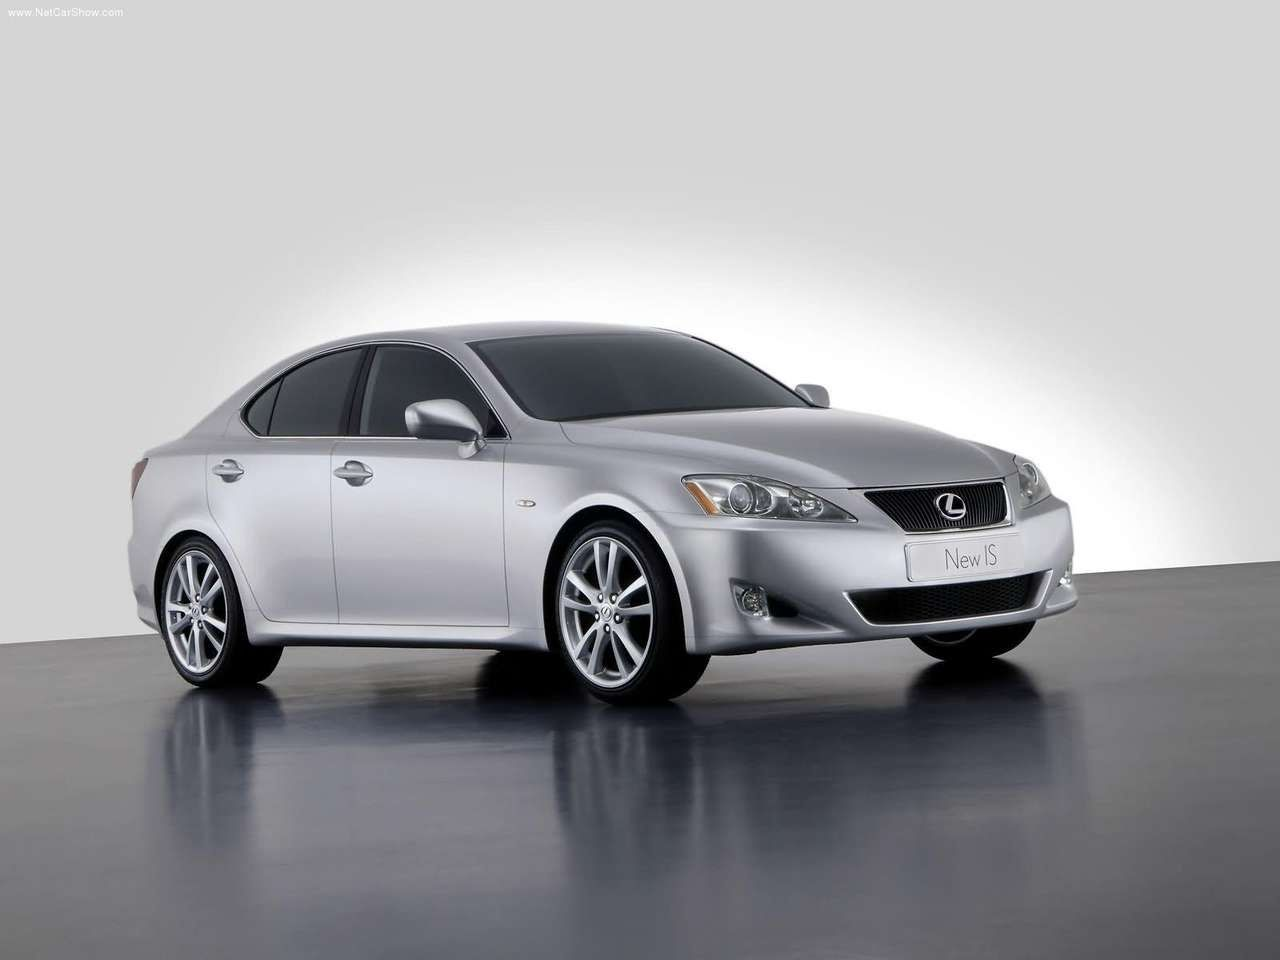 hight resolution of enjoy free pdf download of electrical wiring diagram for lexus is250 220d model 2005